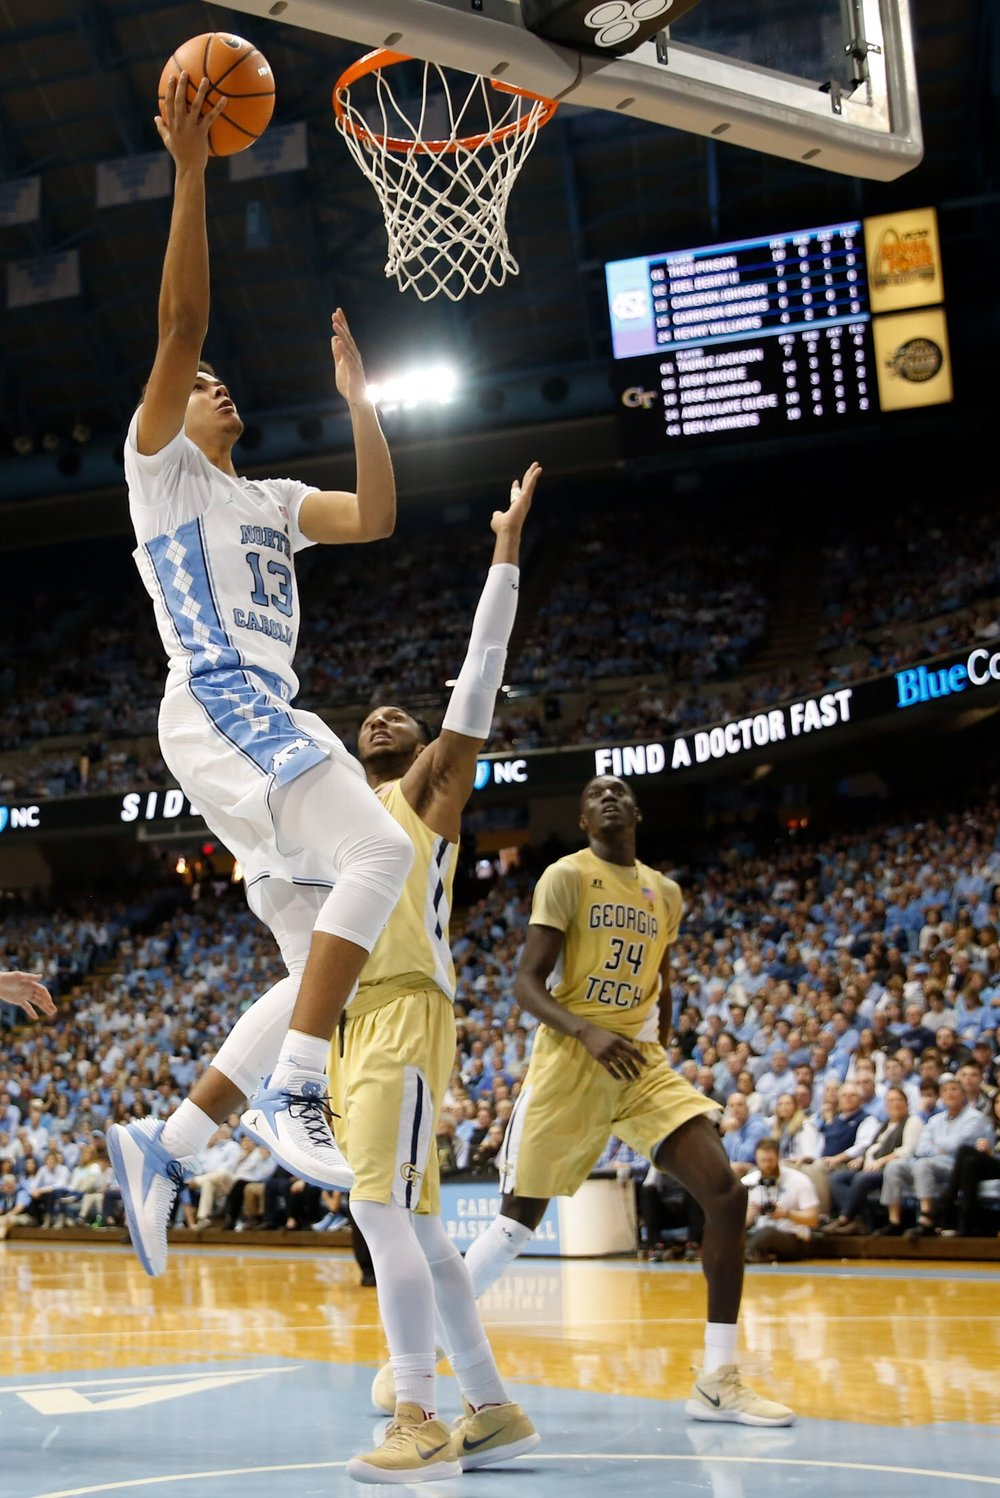 Cameron Johnson (13) scored 16 points in Saturday's win, but it was a few big shots that kept the Tar Heels in the contest. | Photo by Alex Kormann